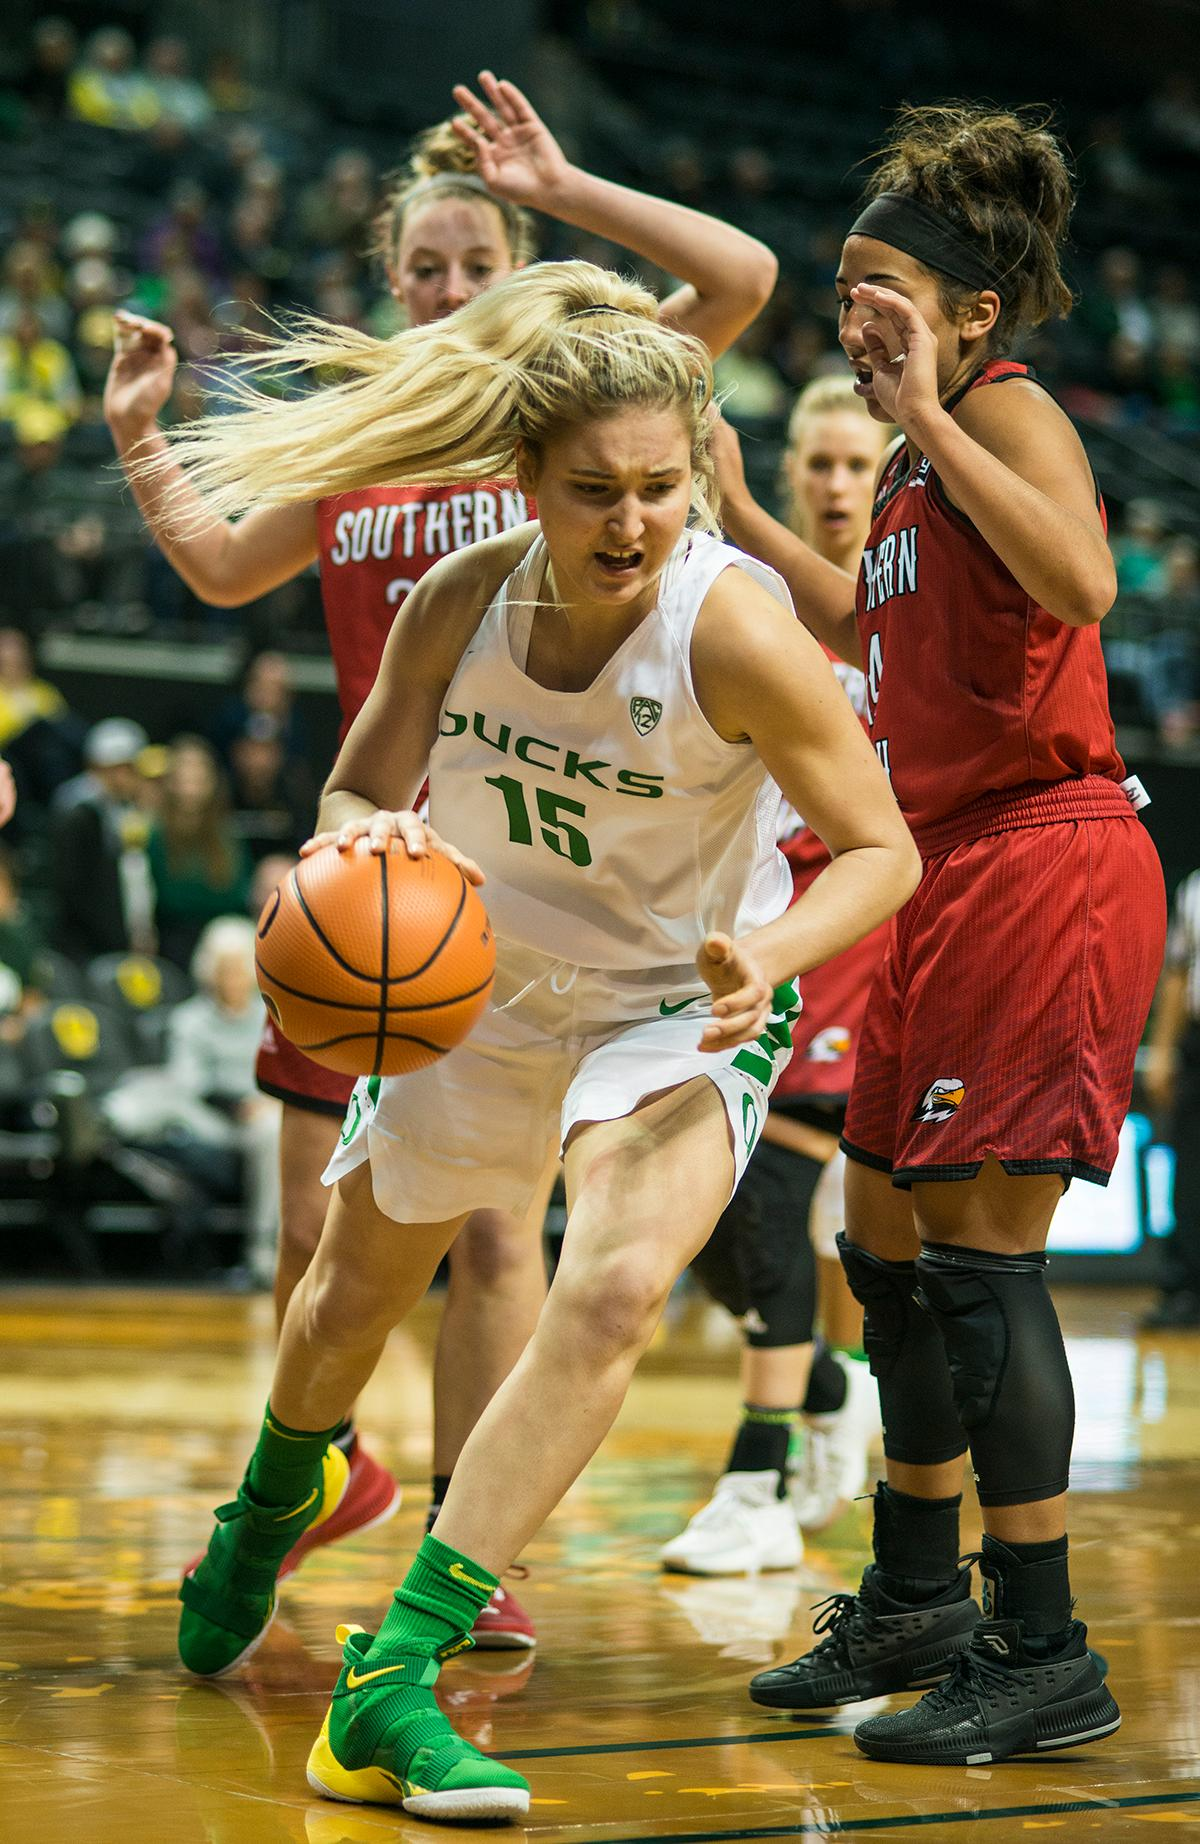 Oregon Ducks Anneli Maley (#15) breaks away with the ball. The University of Oregon Ducks women basketball team defeated the Southern Utah Thunderbirds 98-38 in Matthew Knight Arena Saturday afternoon. The Ducks had four players in double-digits: Ruthy Hebard with 13; Mallory McGwire with 10; Lexi Bando with 17 which included four three-pointers; and Sabrina Ionescu with 16 points. The Ducks overwhelmed the Thunderbirds, shooting 50% in field goals to South Utah's 26.8%, 53.8% in three-pointers to 12.5%, and 85.7% in free throws to 50%. The Ducks, with an overall record of 8-1, and coming into this game ranked 9th, will play their next home game against Ole Miss on December 17. Photo by Rhianna Gelhart, Oregon News Lab